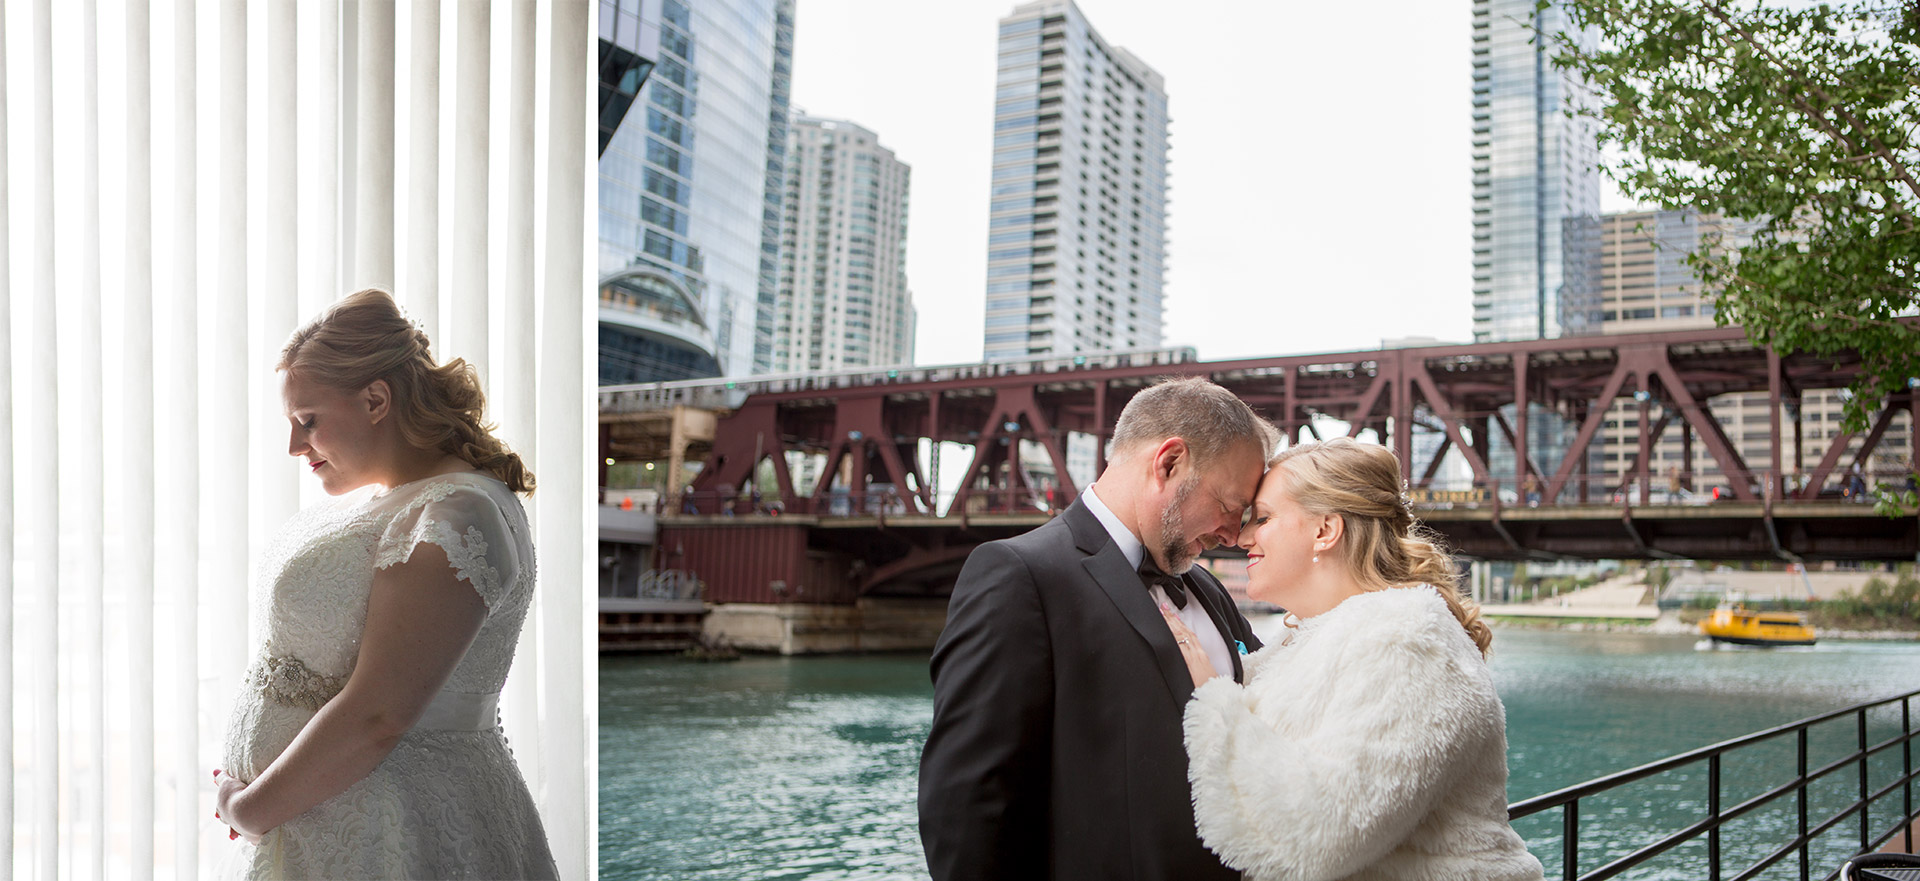 Beesley-peoria-central-illinois-bloomington-normal-wedding-engagement-photographer-photographers-photography-chicago-windy-city-pregnant-maternity-bridal-chicago-river-pearl-brasserie-carnivale.jpg